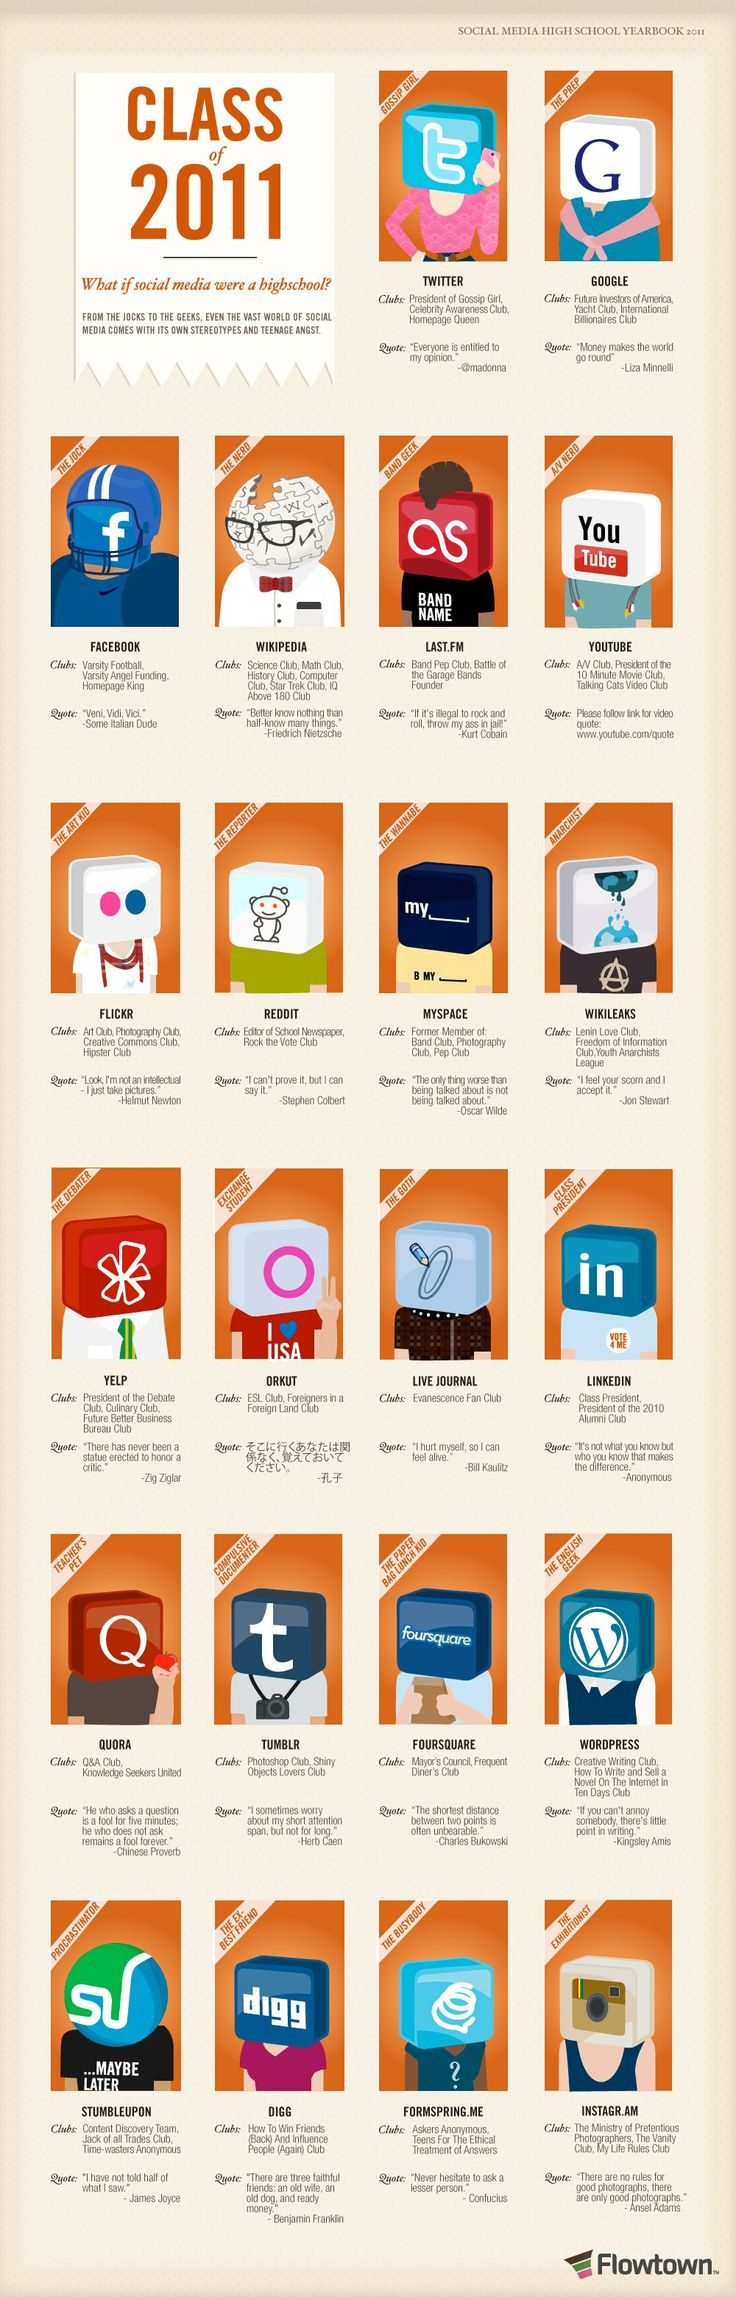 The 2011 high school class of social networks / social media sites